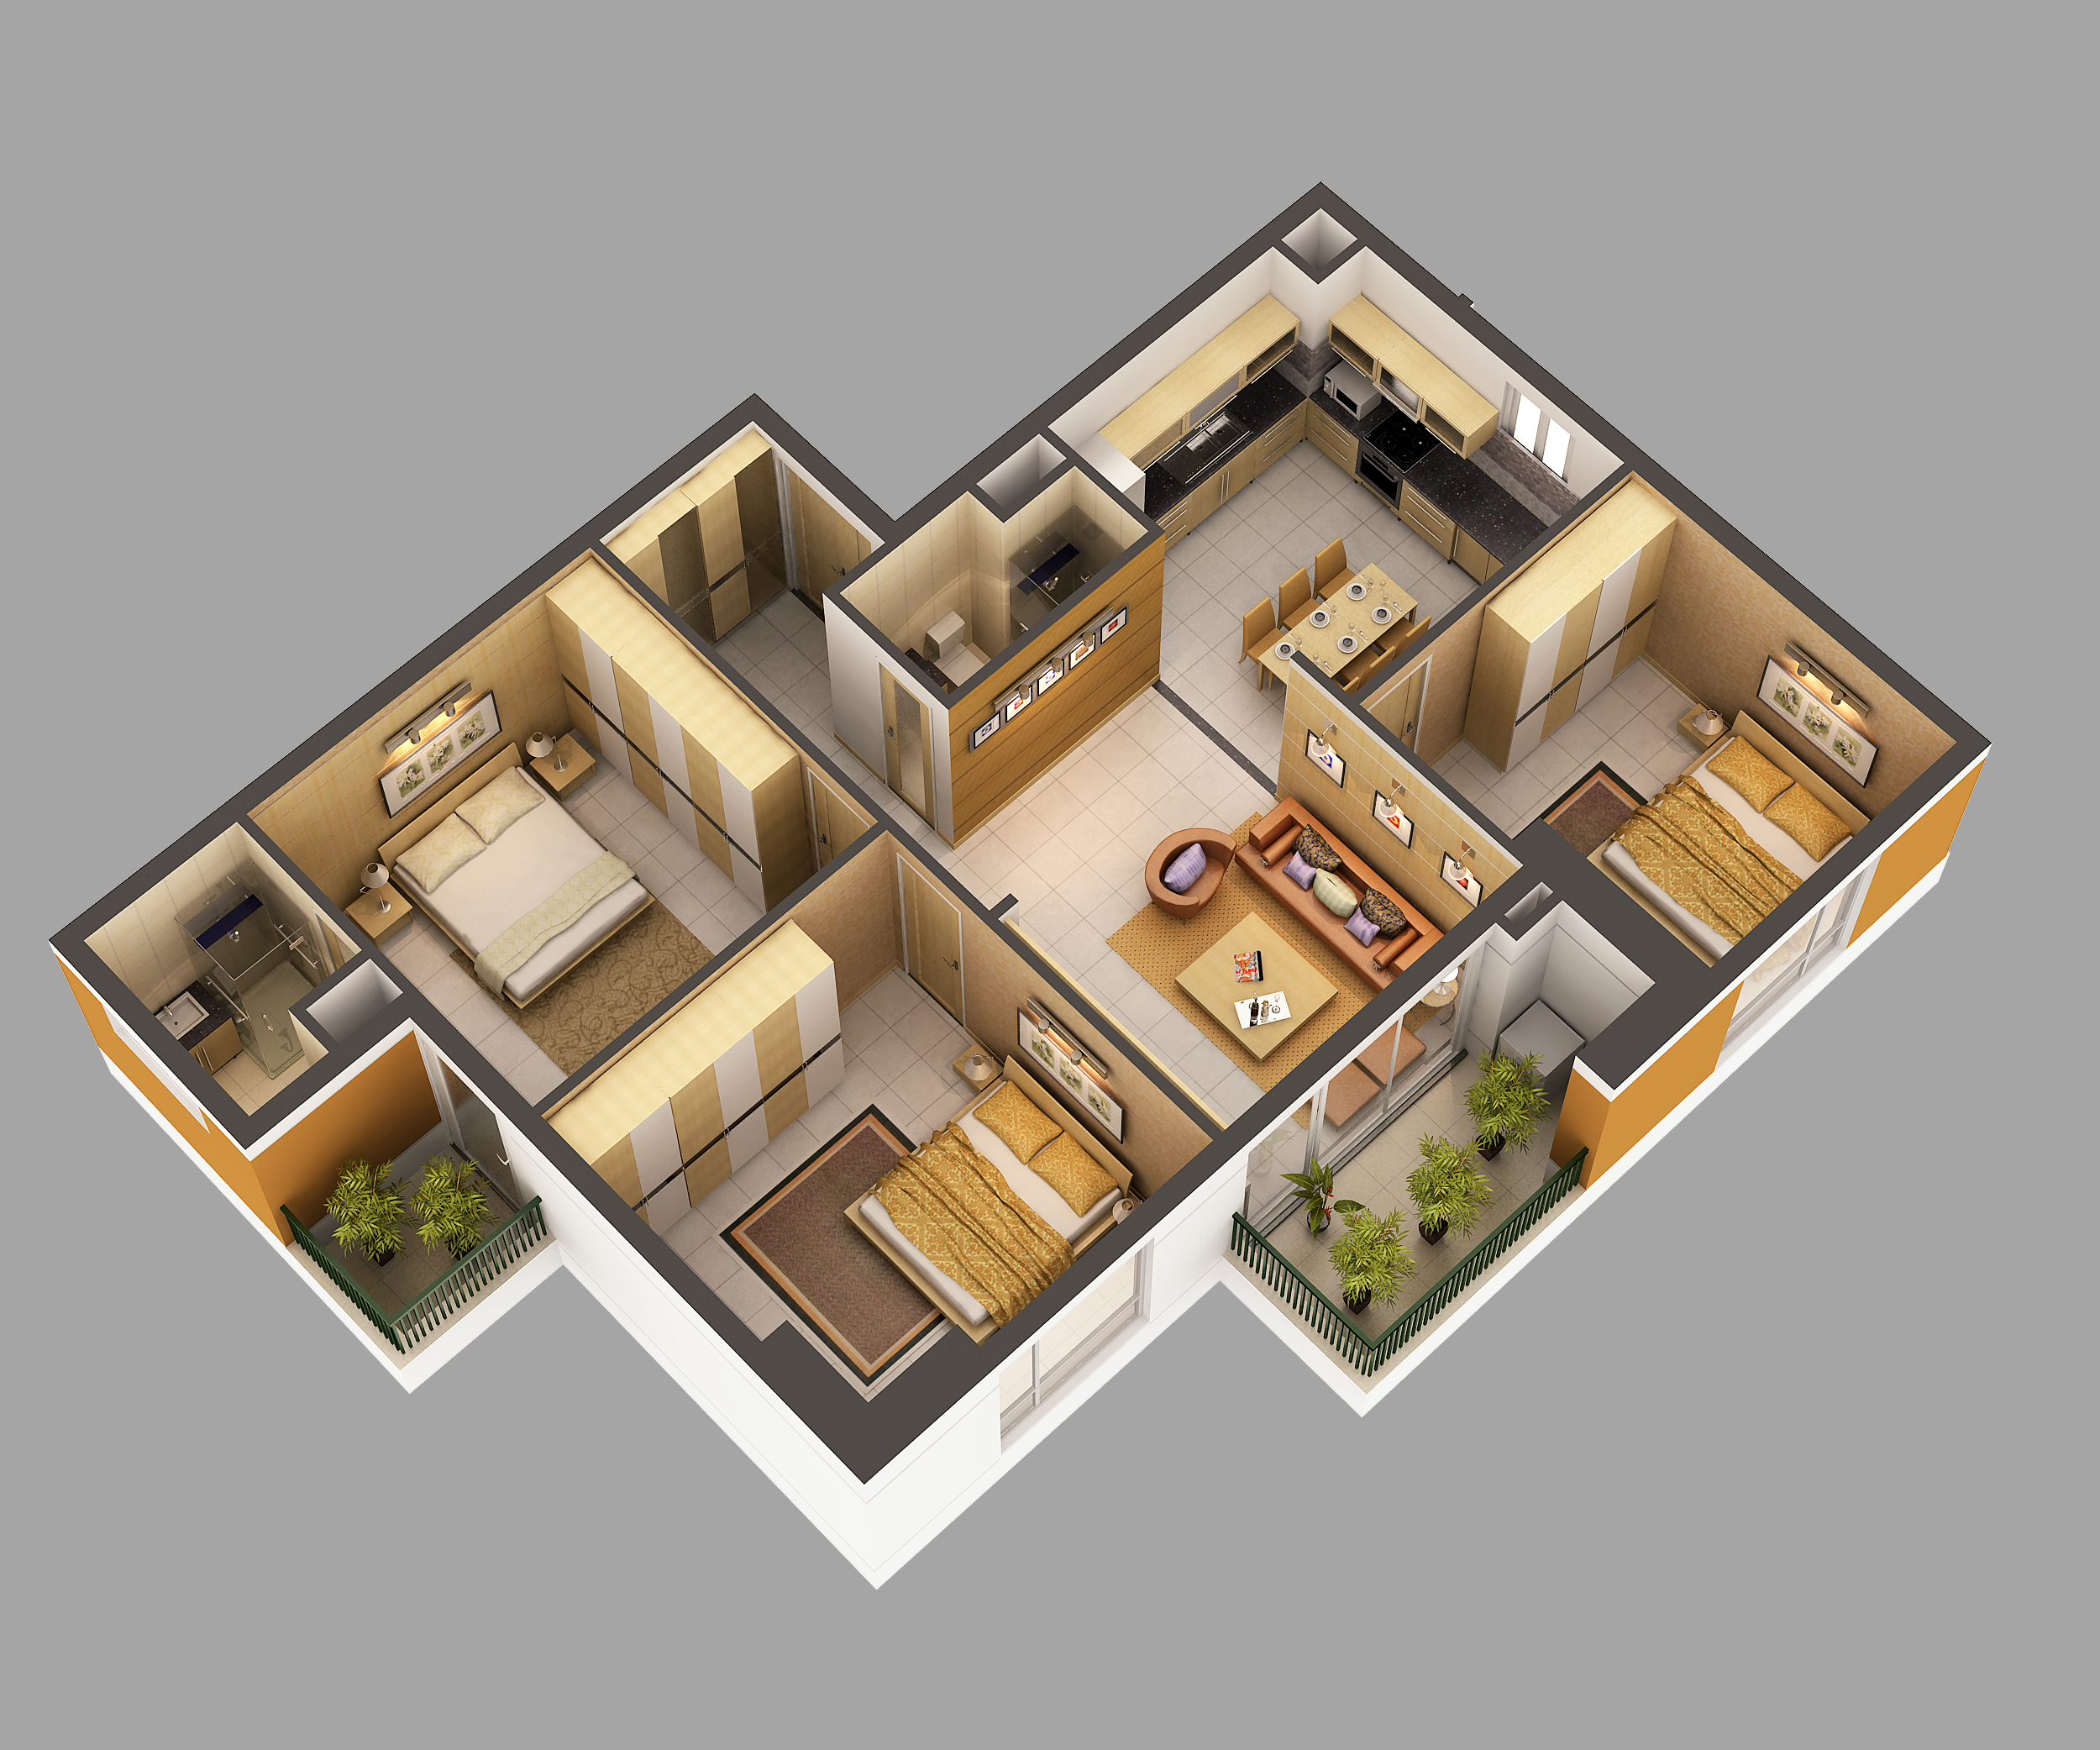 3d model home interior fully furnished 3d model max for Apartment design models